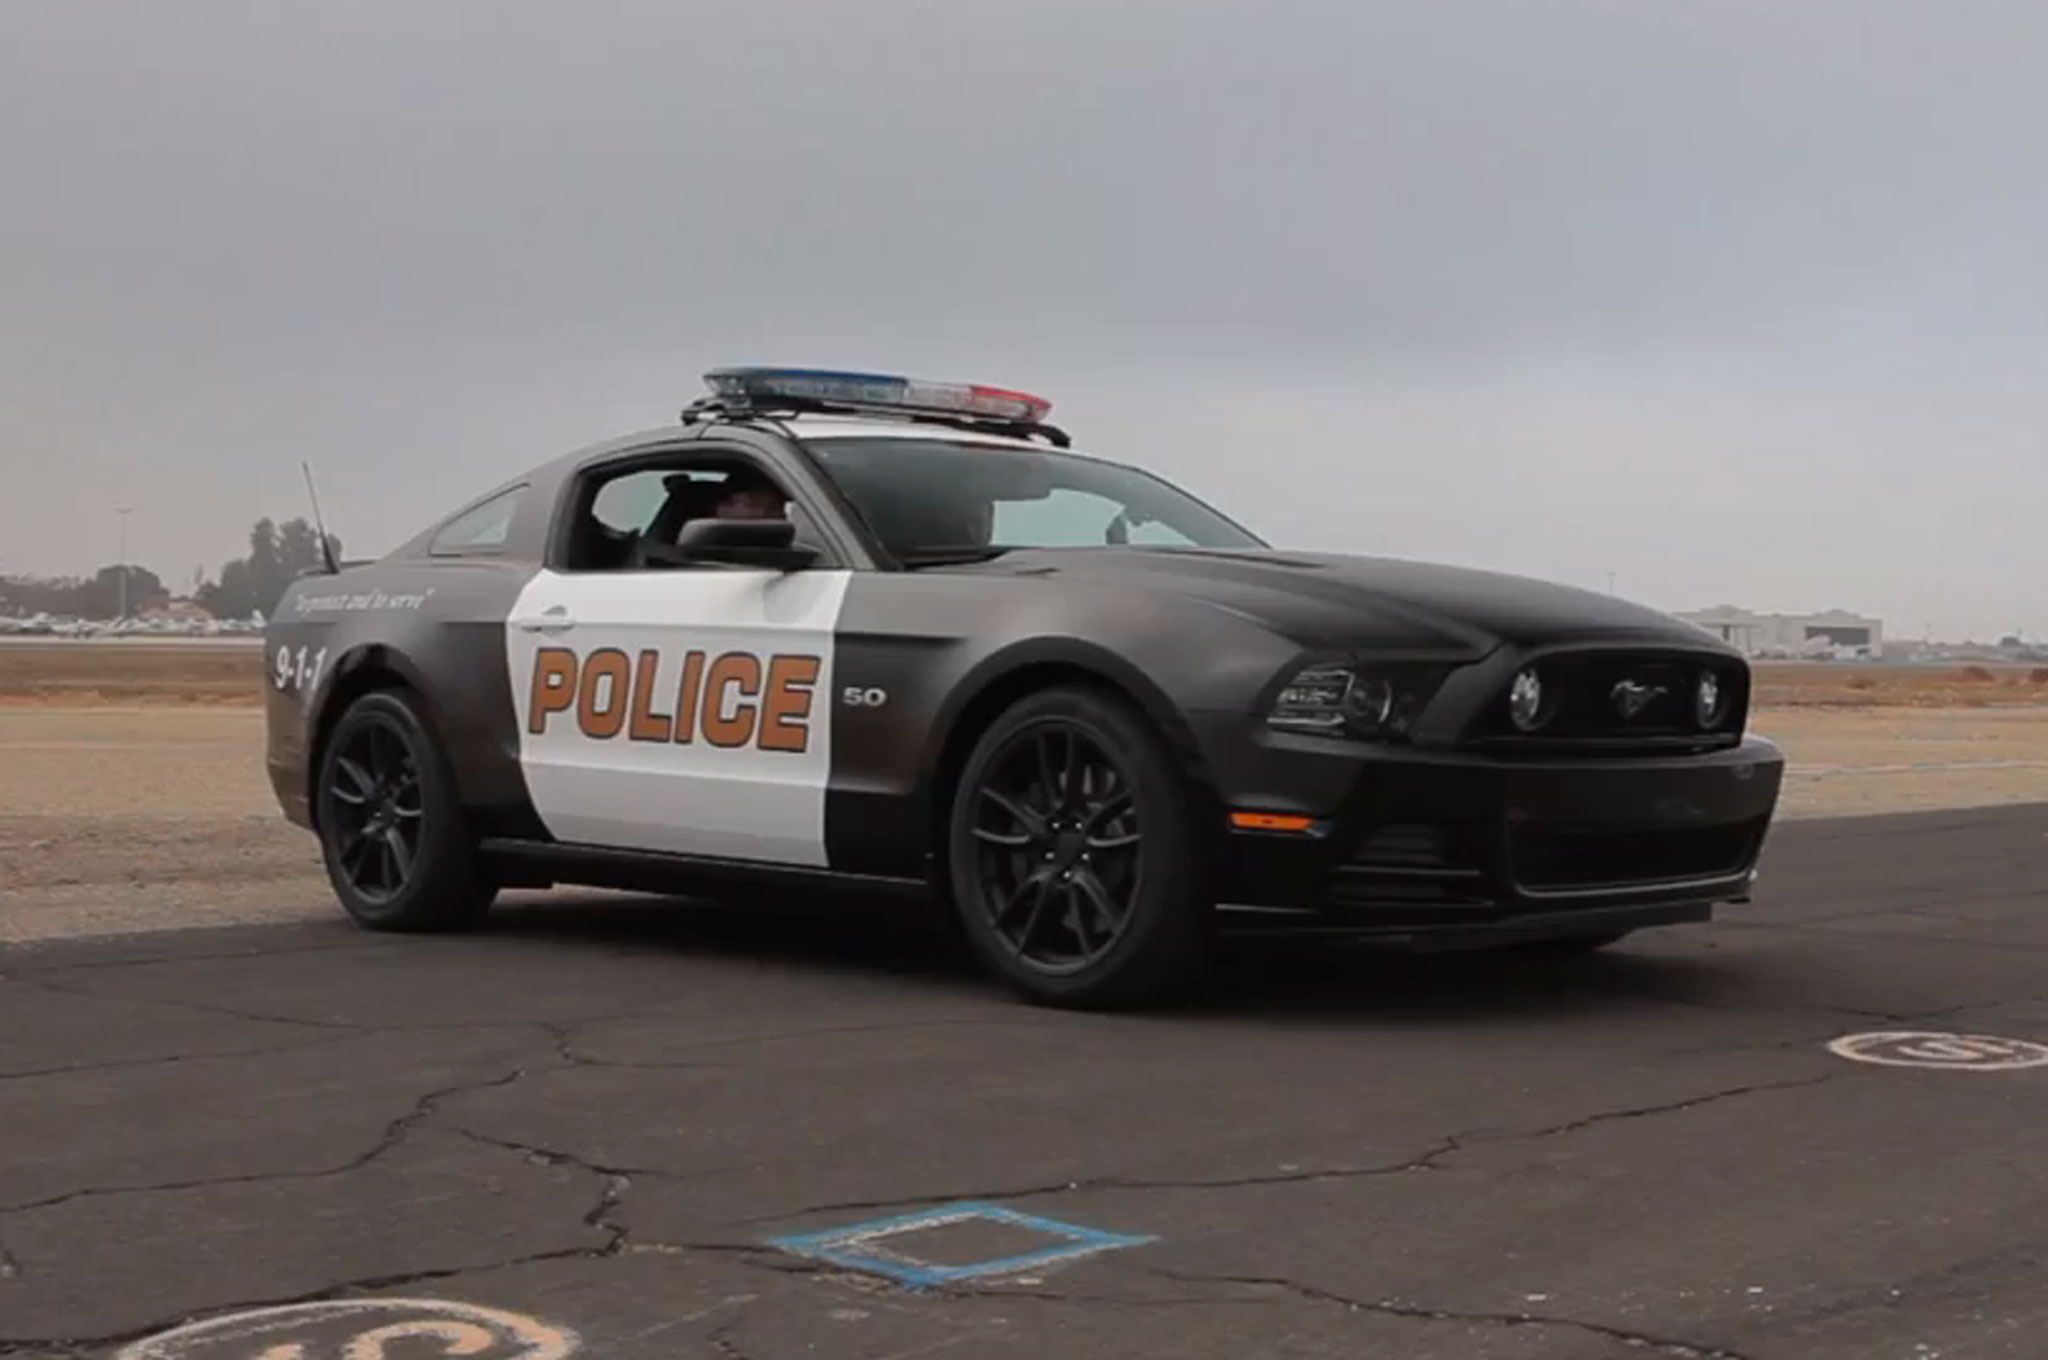 5-0! 2014 Ford Mustang GT Police Car on World's Fastest ...  Fastest Police Car In The World 2013